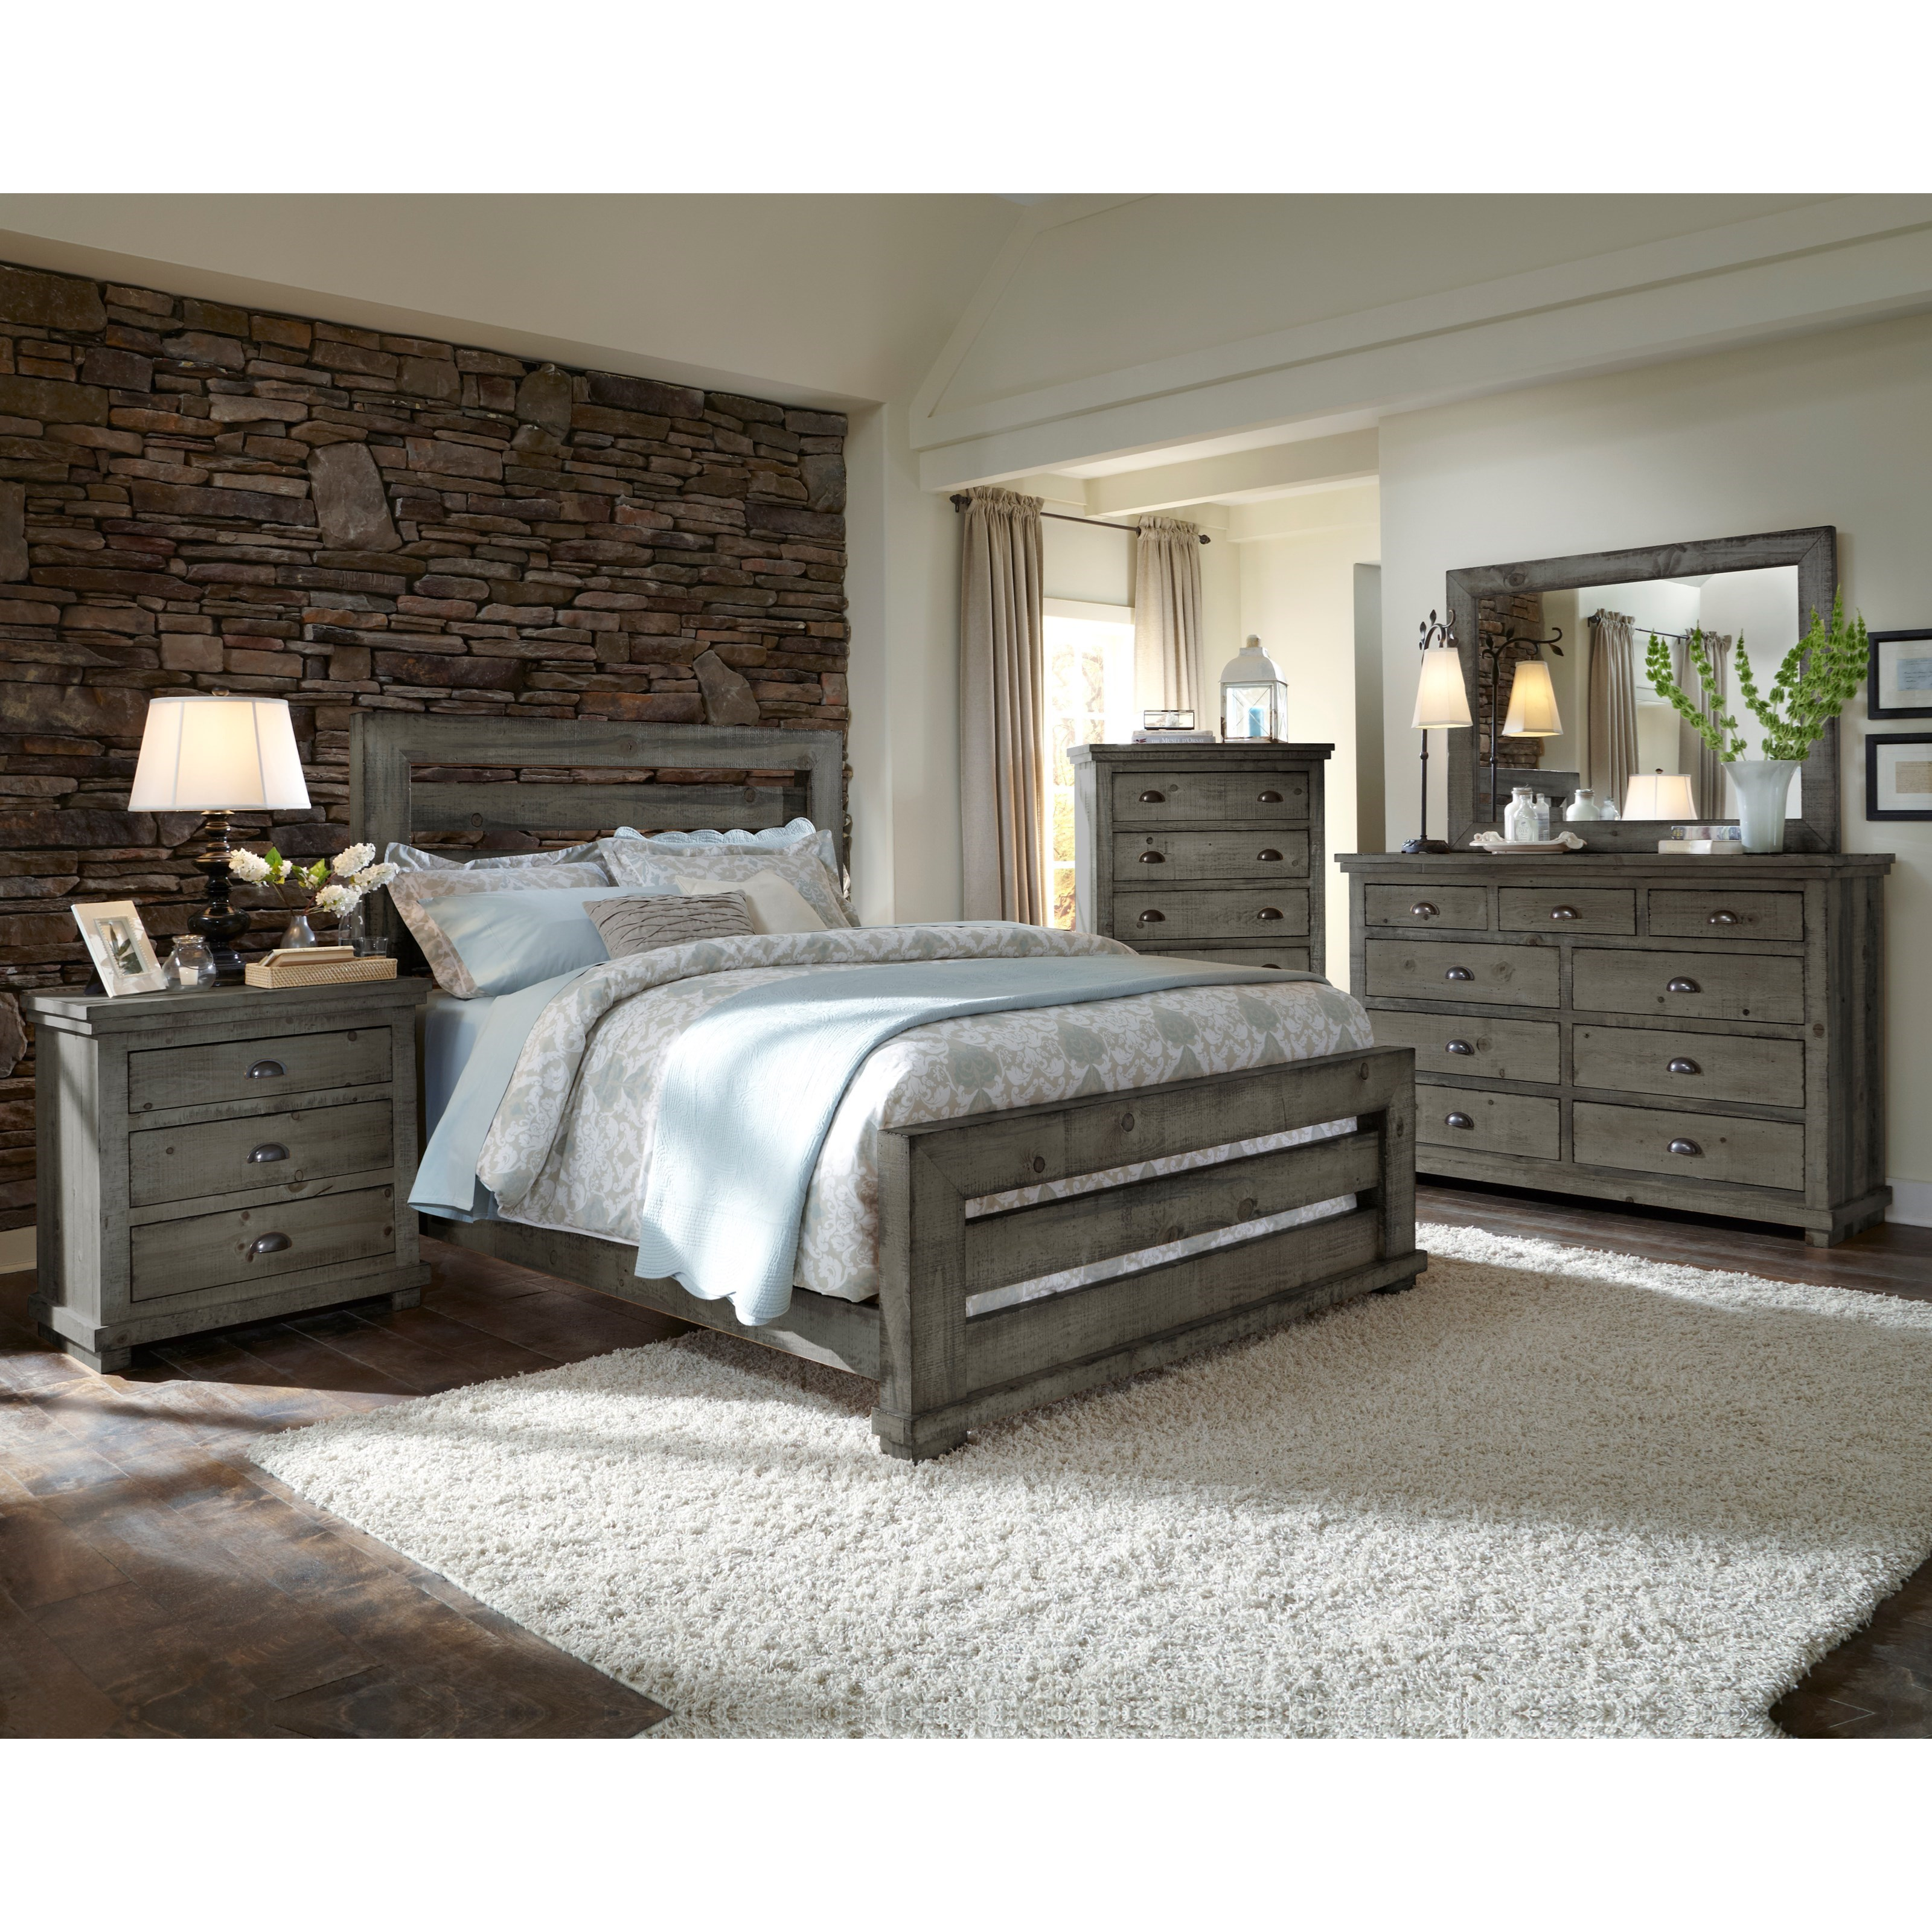 Direct Bedroom Furniture: Progressive Furniture Willow Queen Bedroom Group